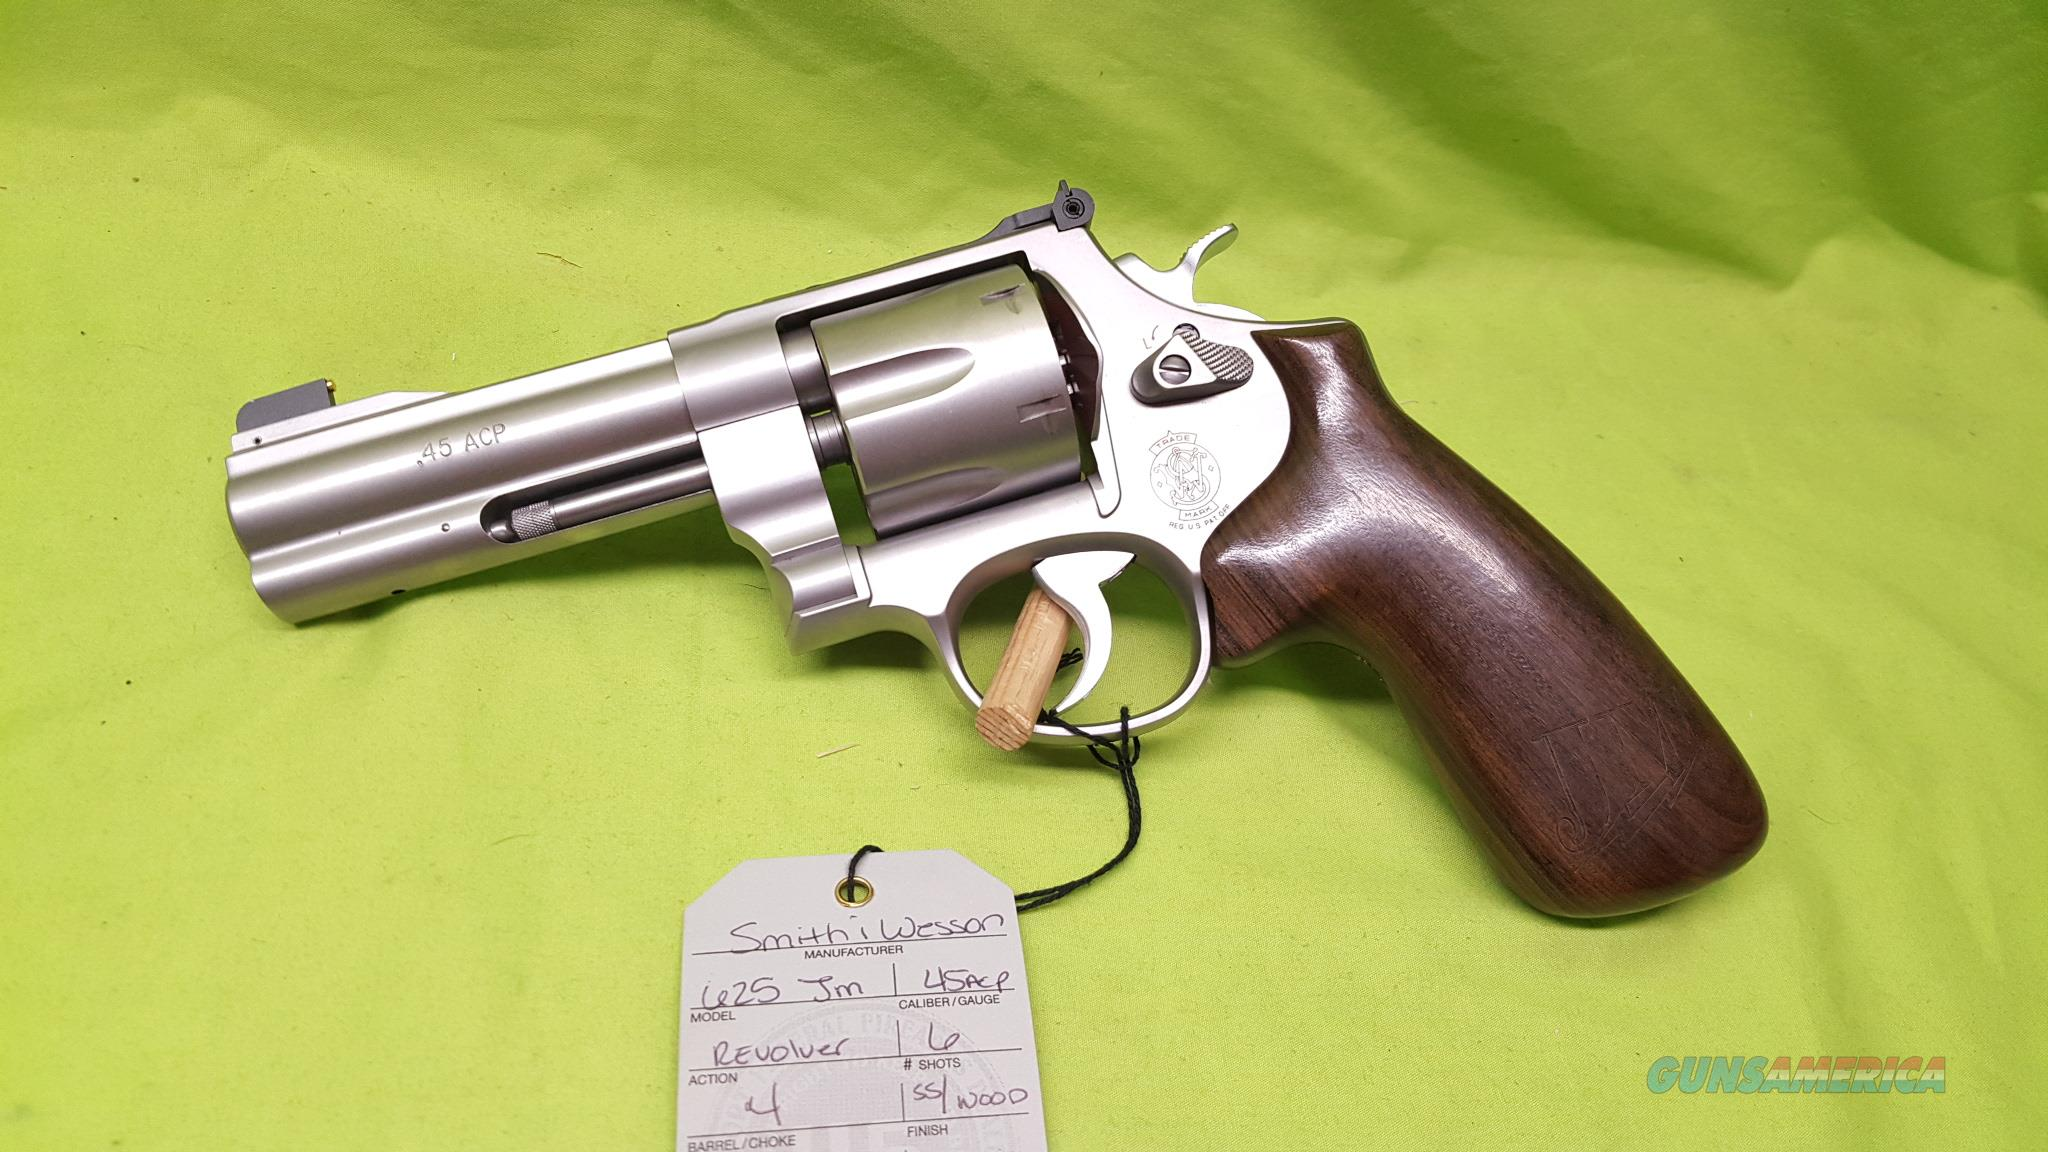 "S&W 625 JM 4"" 45ACP ADJ SIGHT JERRY MICULER 45 SS  Guns > Pistols > Smith & Wesson Revolvers > Performance Center"